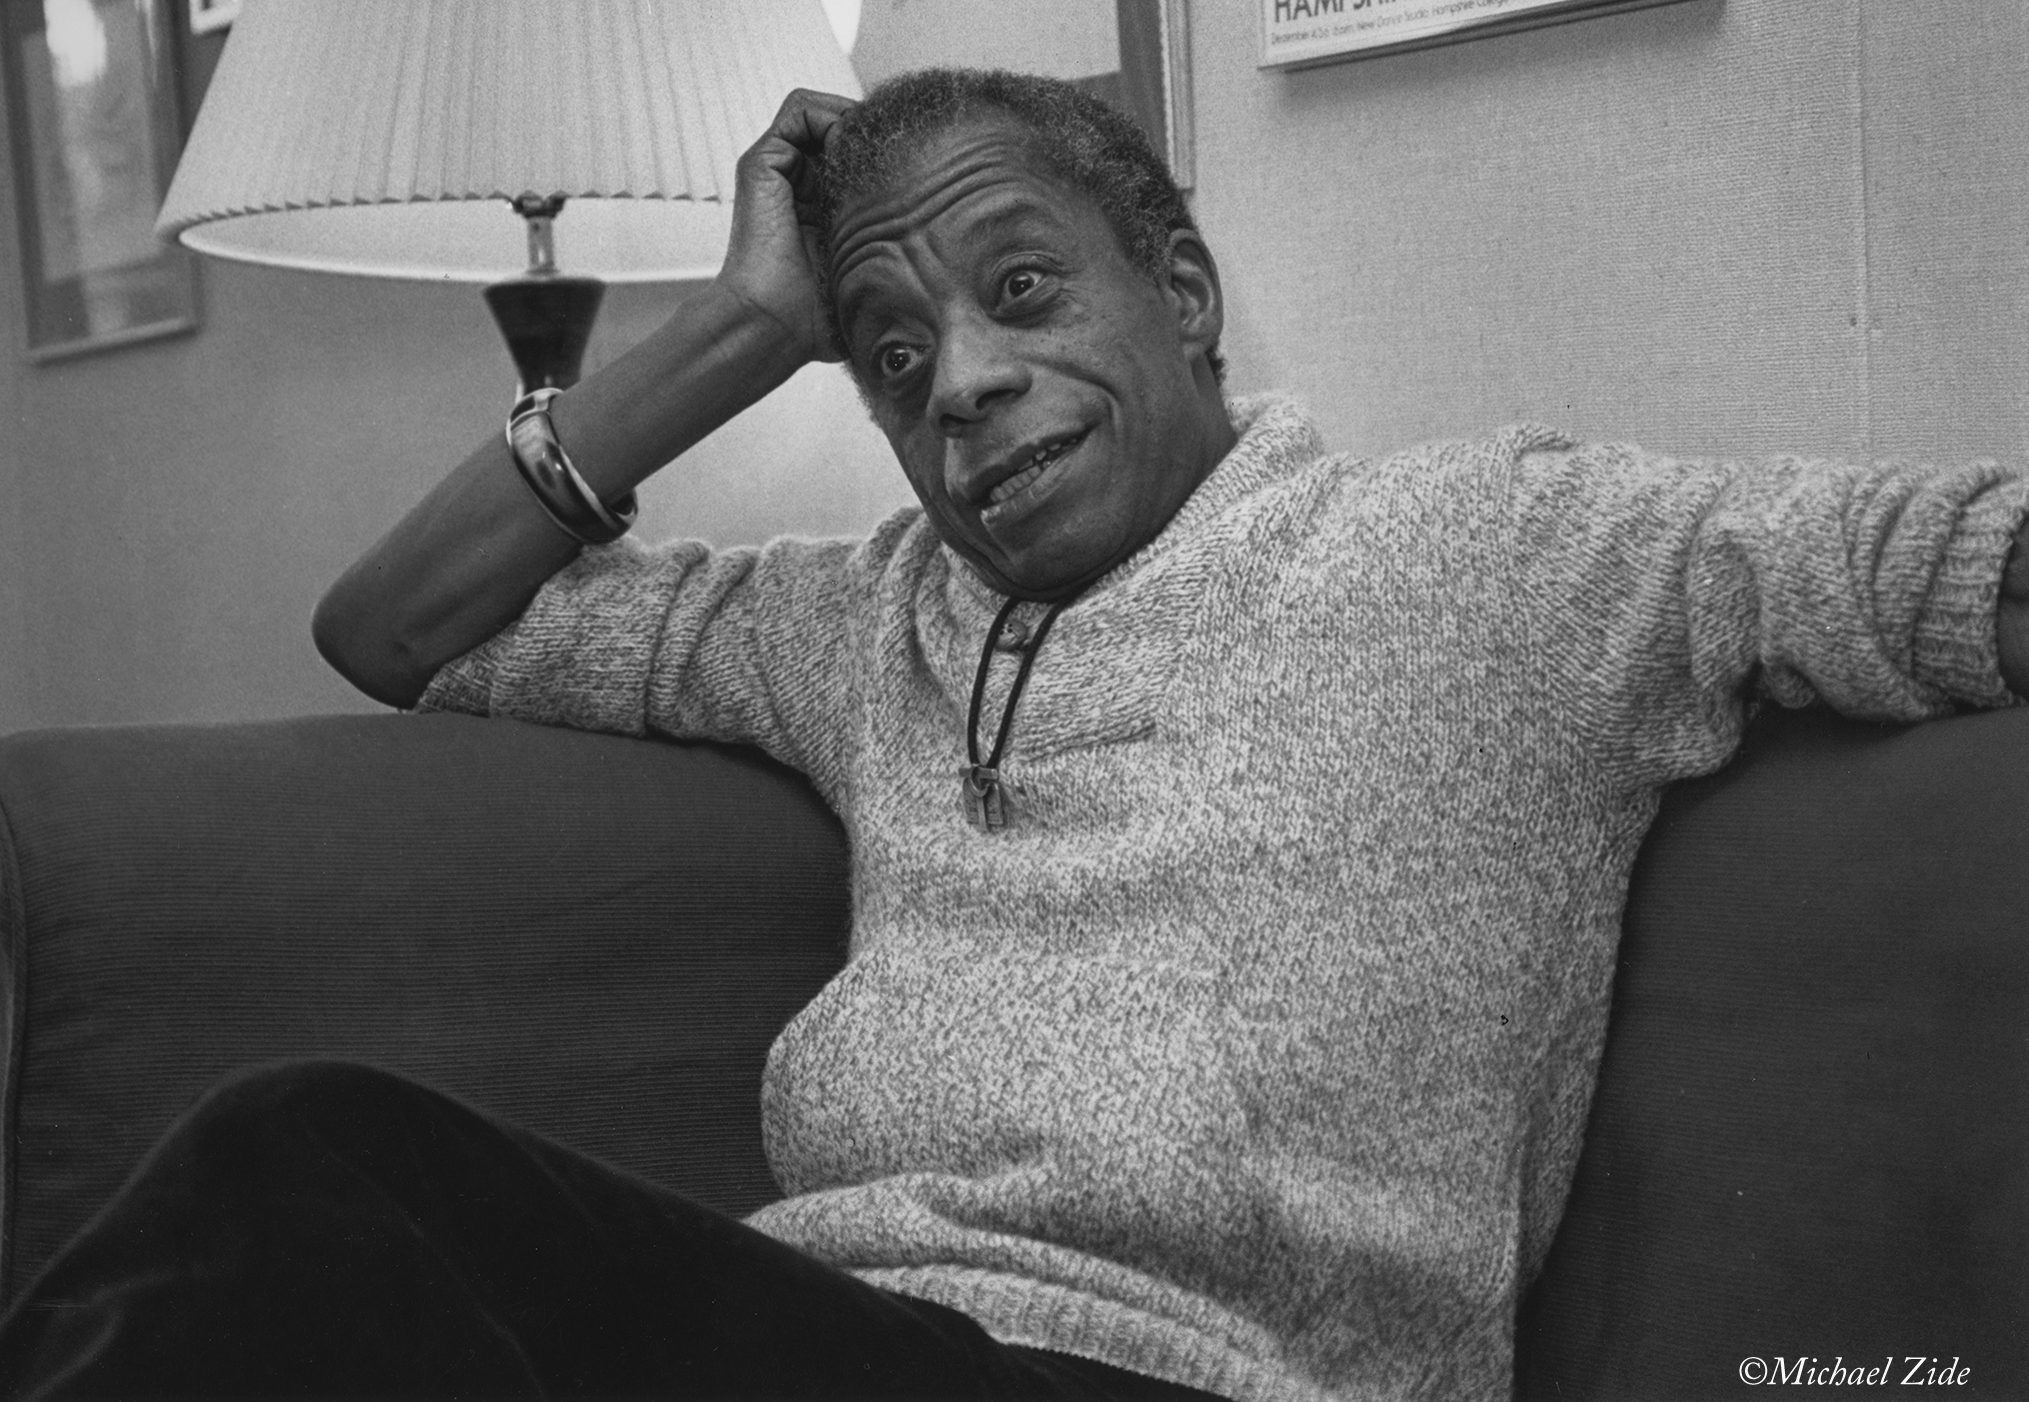 short essays by james baldwin The metamorphosis, baldwin, sonny blues - analysis of the short story: sonny's blues essay on short fiction stories sonny's blues by james baldwin essay.